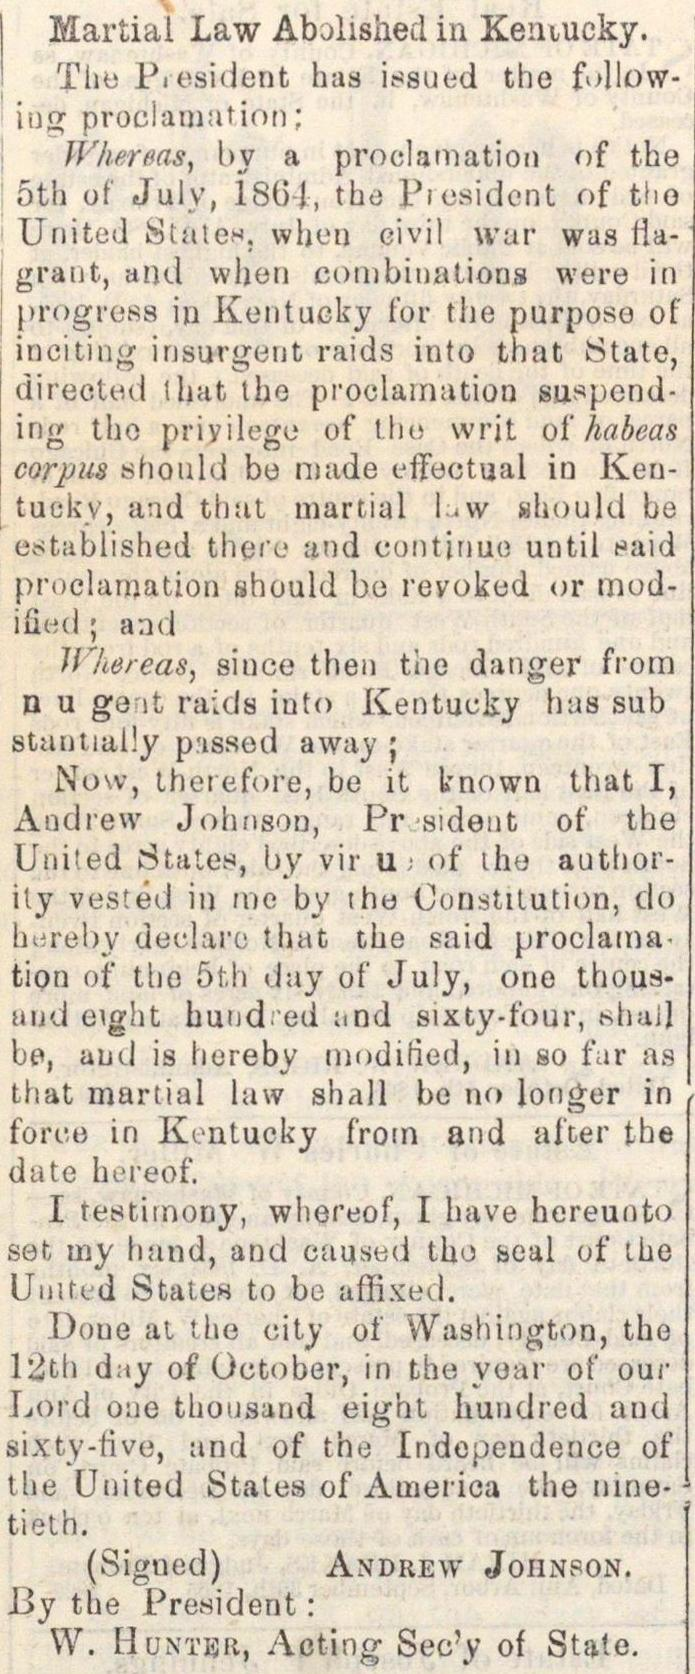 Martial Law Abolished In Kentucky image